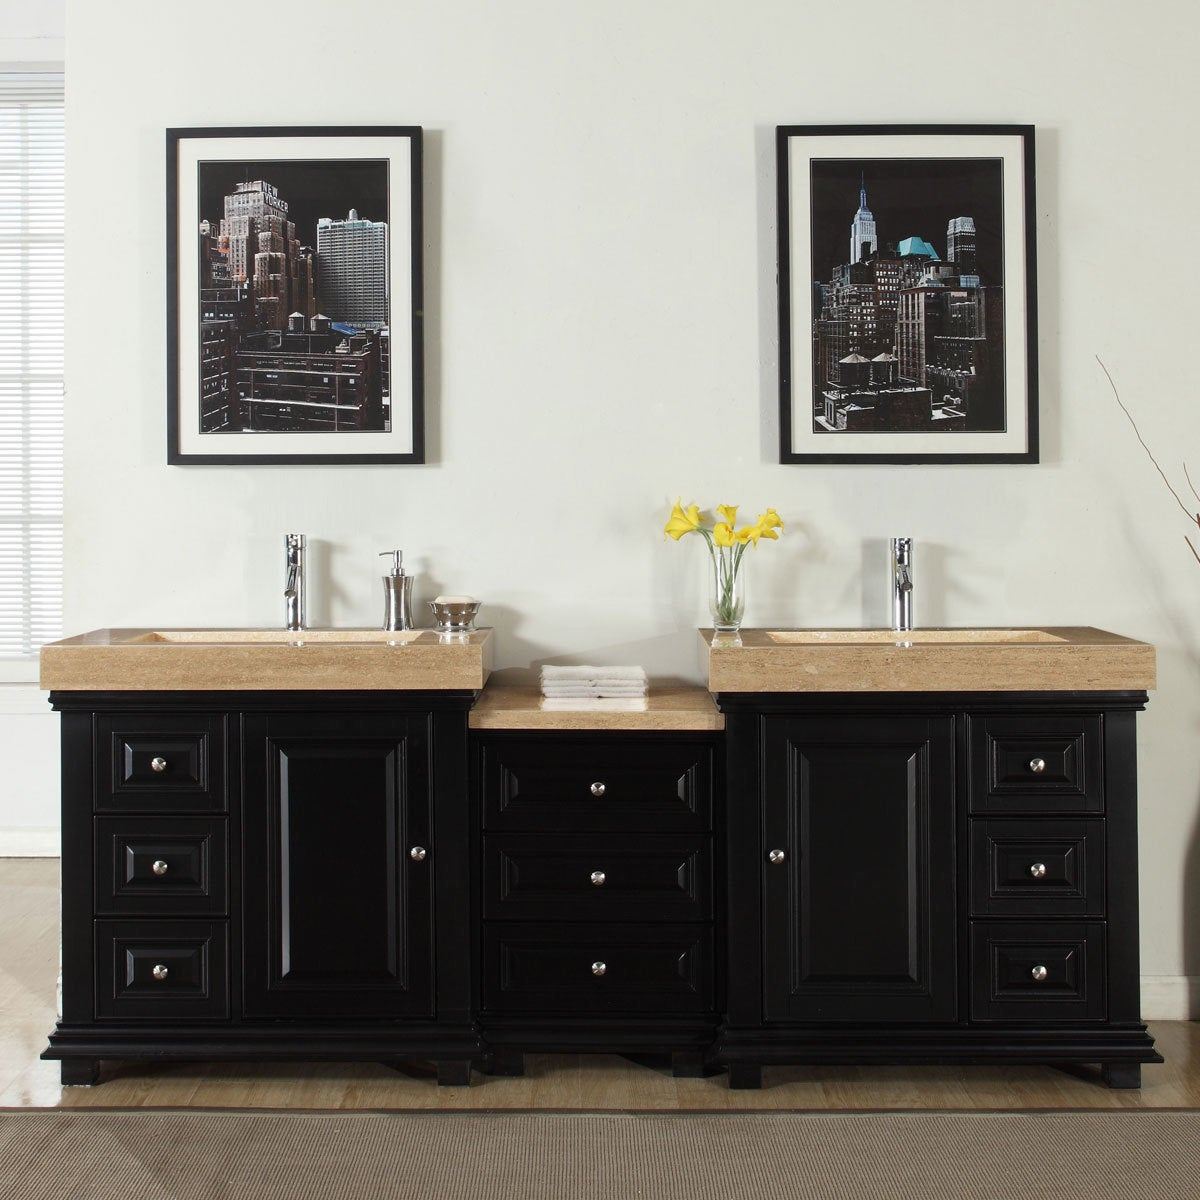 Shop silkroad exclusive 90 inch integrated travertine stone sink modern bathroom double vanity free shipping today overstock com 10298949